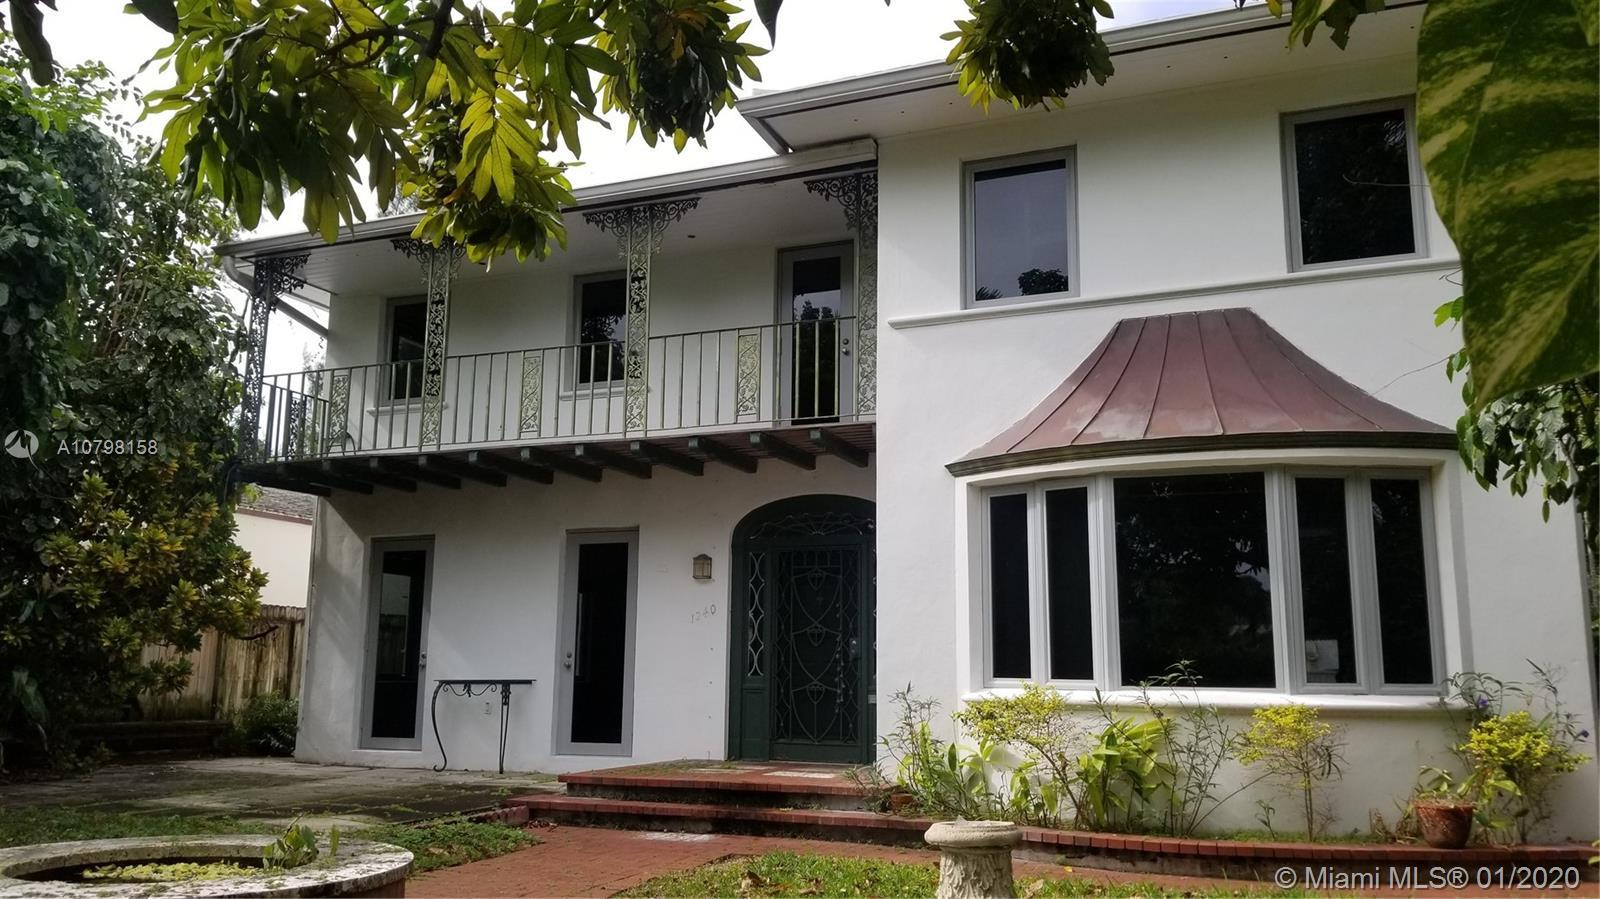 Beautiful Southern-Style home with plenty of charm and space. Impact windows & newer roof. Heart of